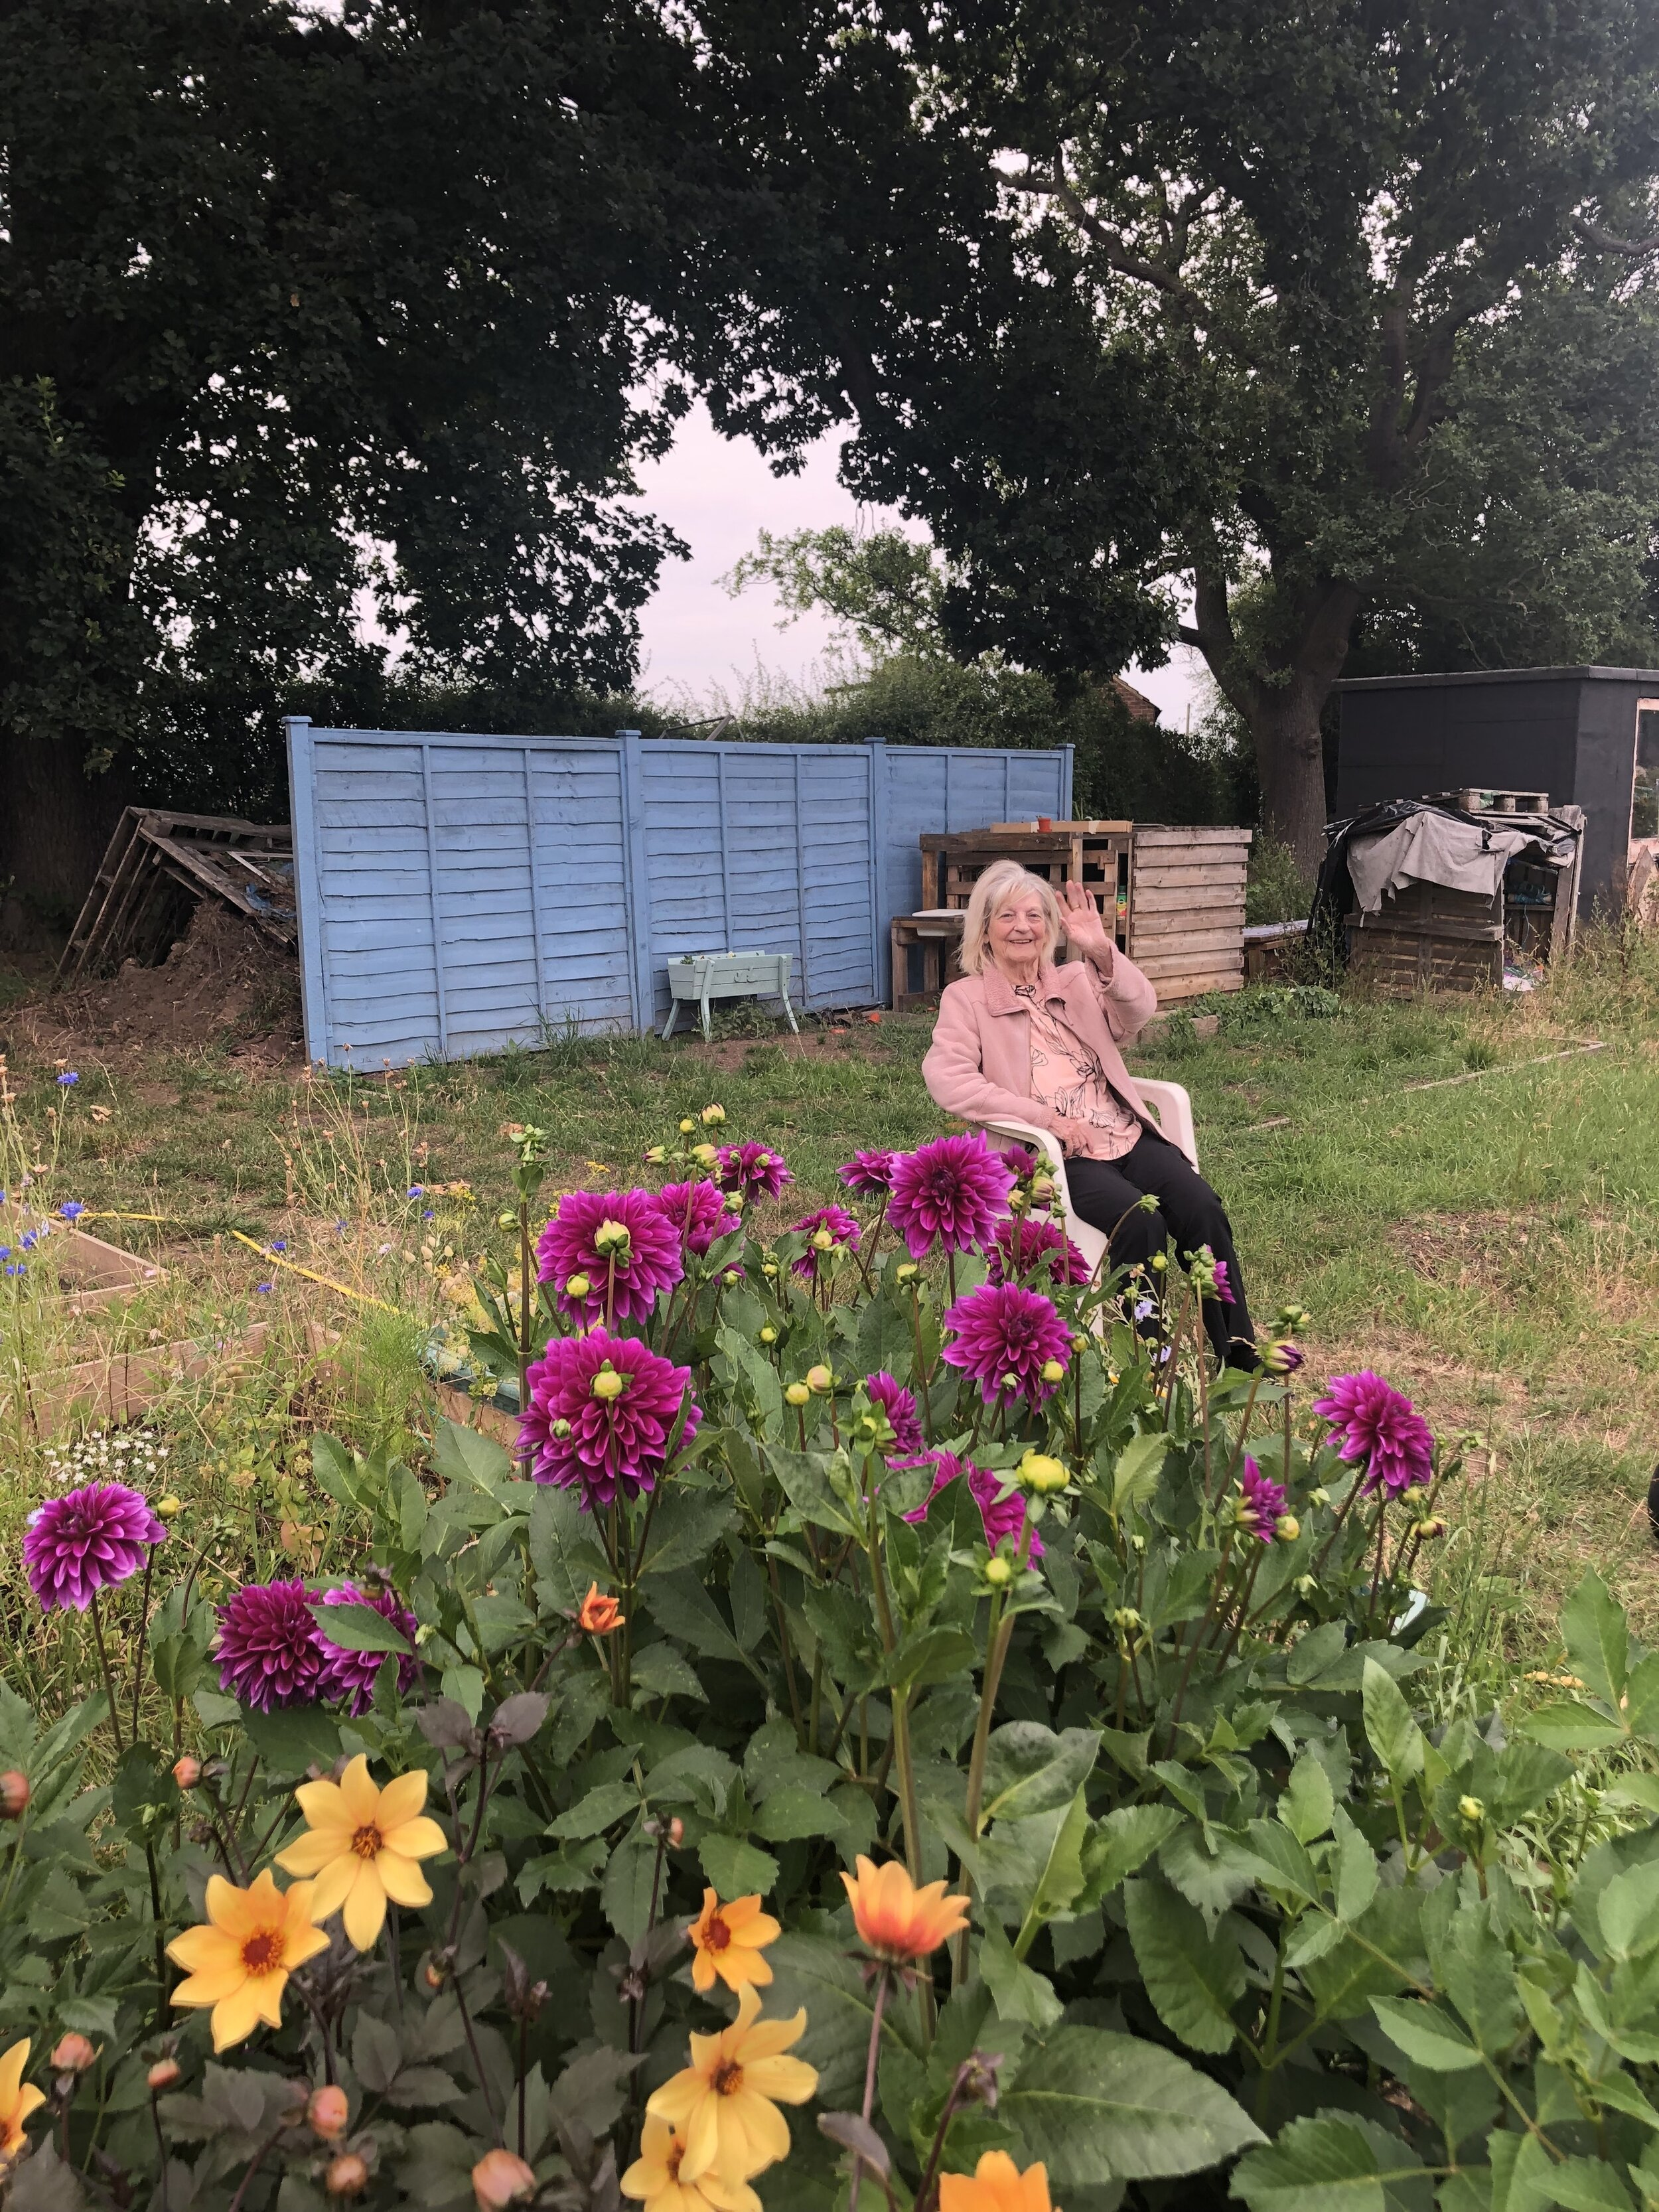 Nanny May in her element - August 2019